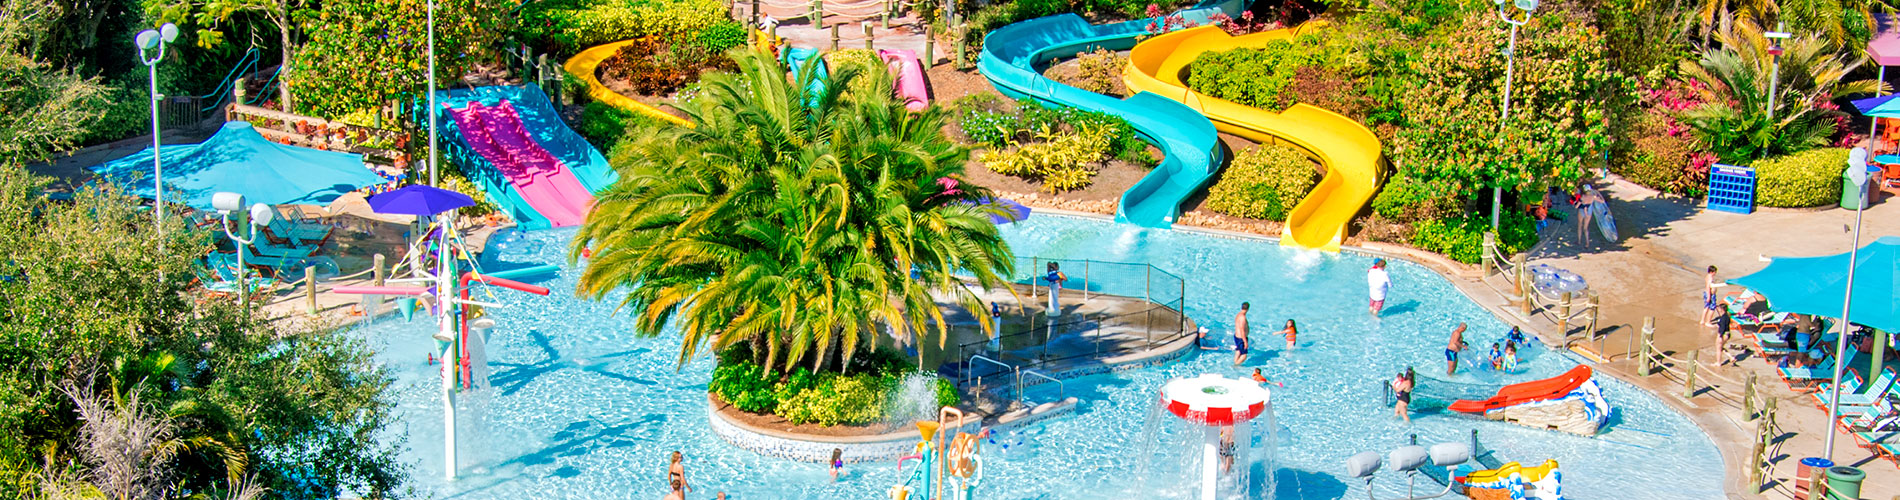 Rides and Slides at Aquatica Orlando Water Park